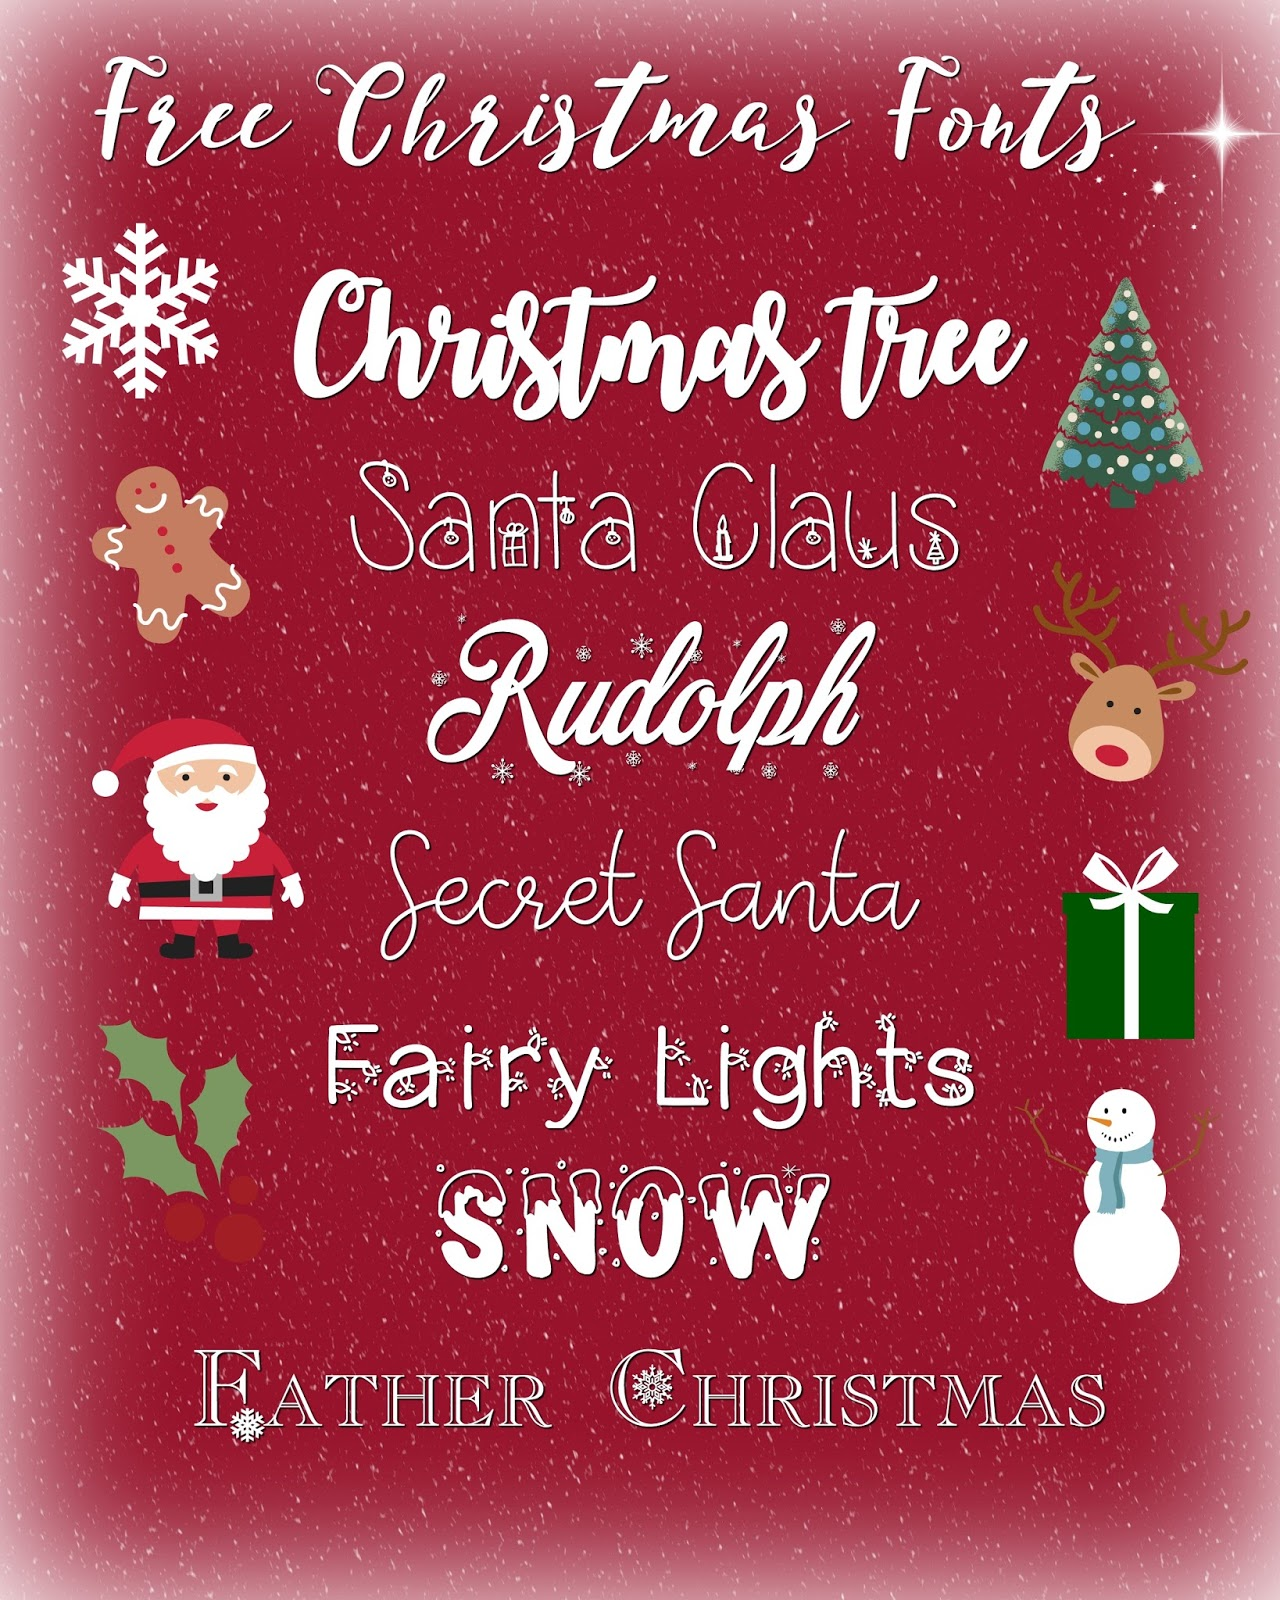 Blogging, Lifestyle, Fonts, Resources, free christmas fonts, free fonts, christmas fonts, downloads